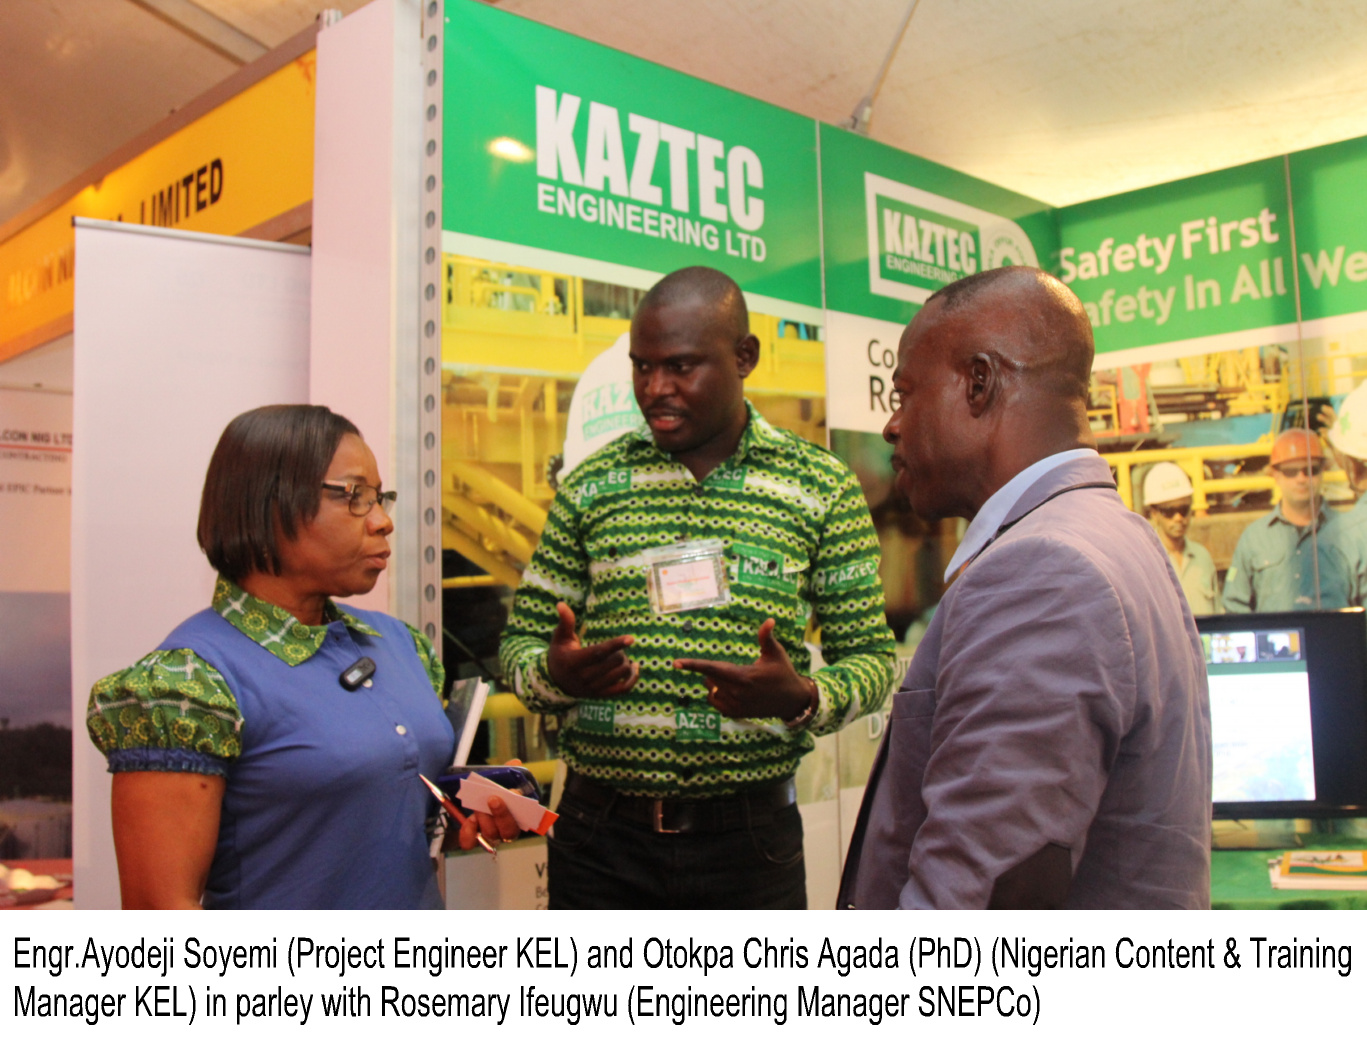 At the Kaztec Engineering Limited Booth